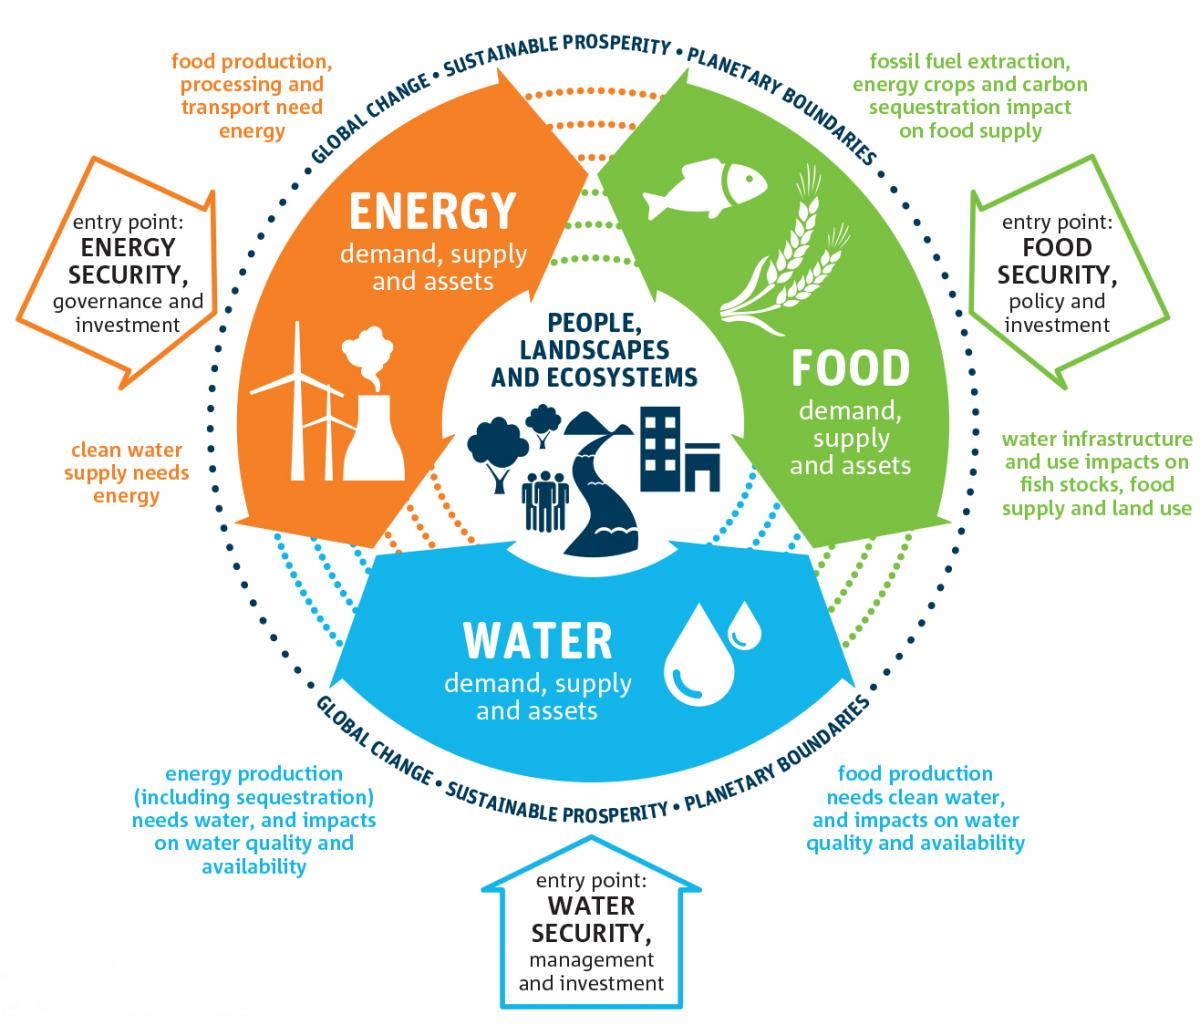 Interrelation and interaction of water food and energy in policy making